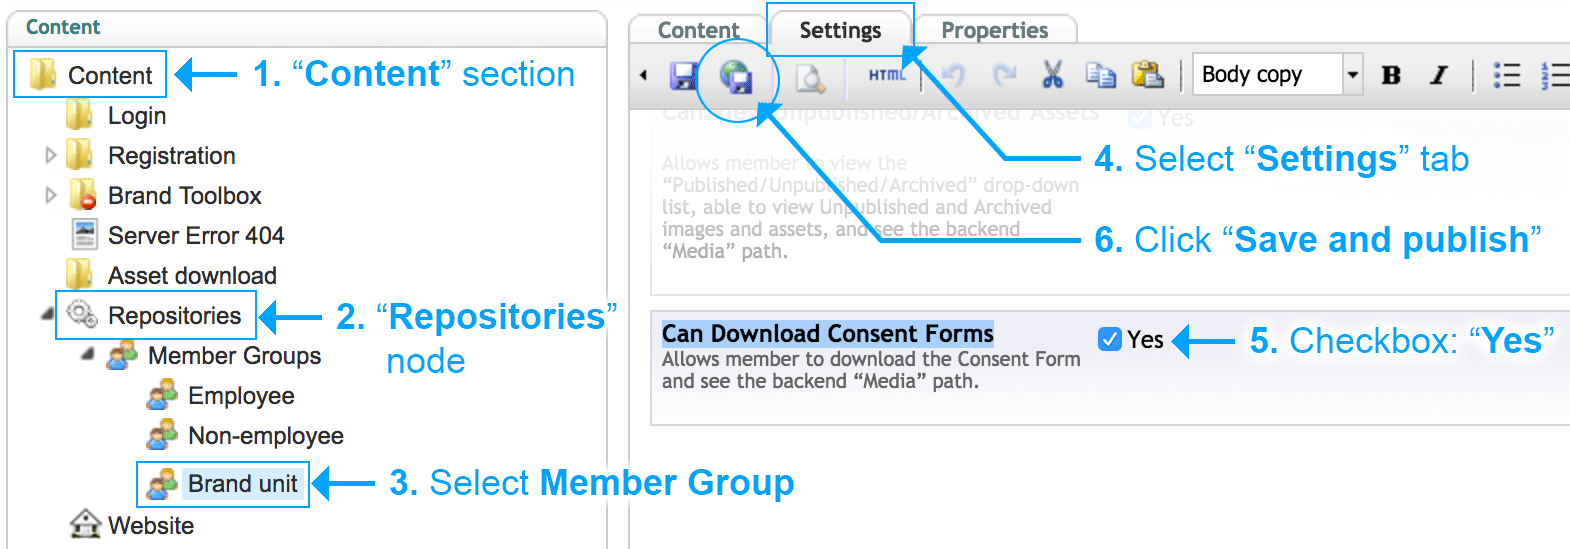 Consent Forms Enable Download Settings